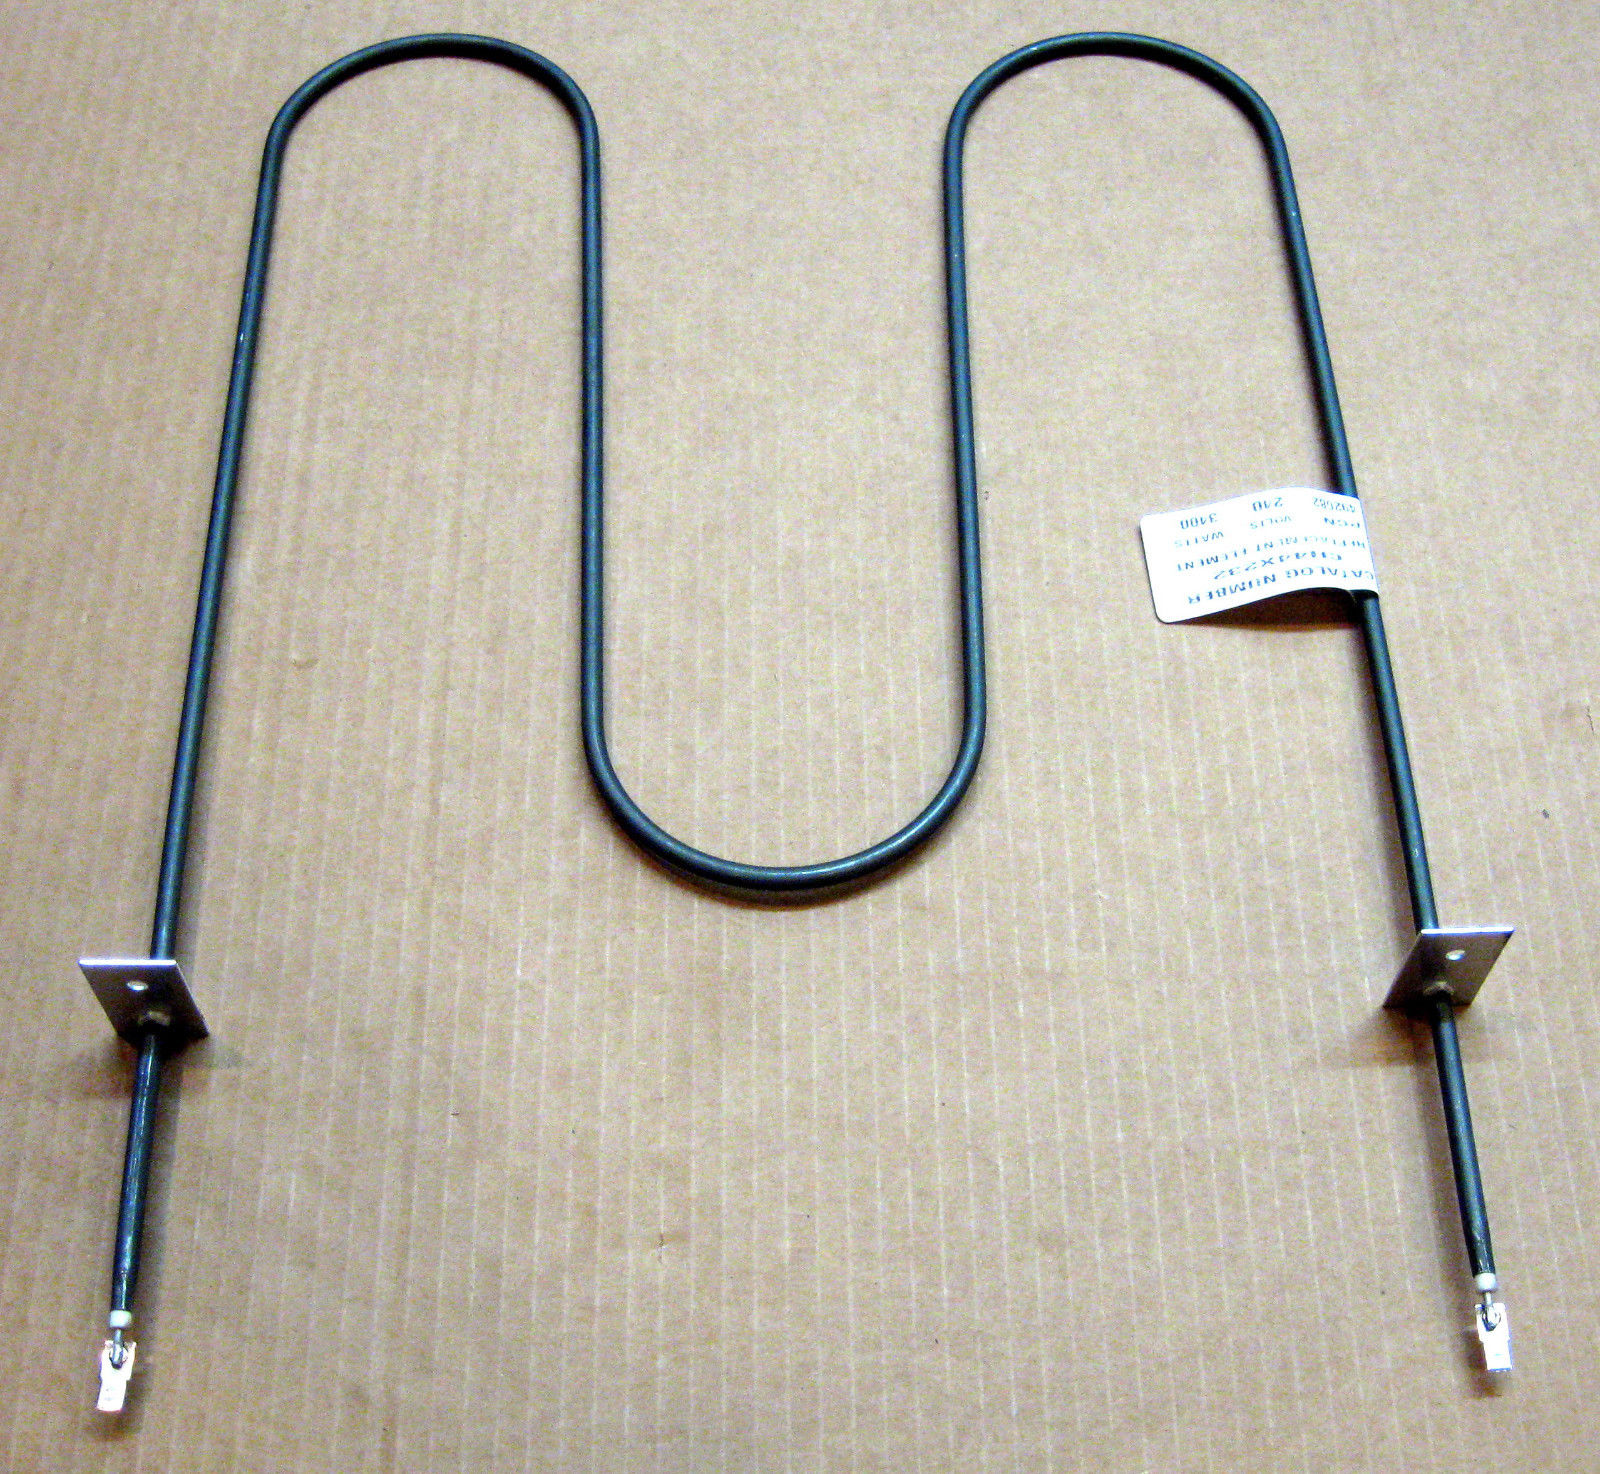 Ge Oven Heating Element Replacement